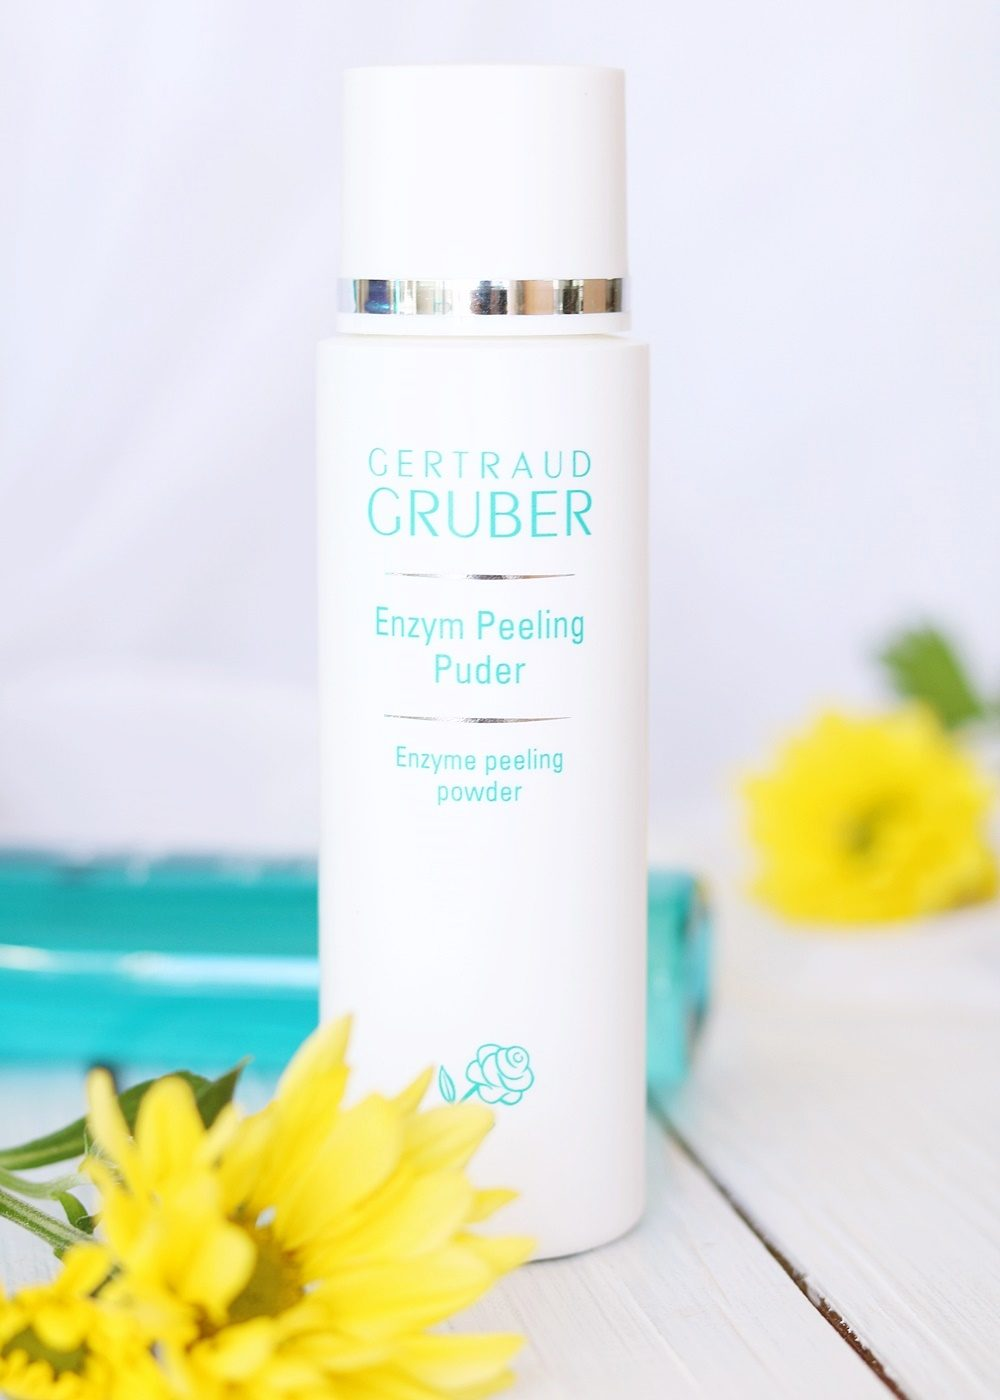 Beautypress Box August 2016 Gertraud Gruber Enzym Peeling Puder